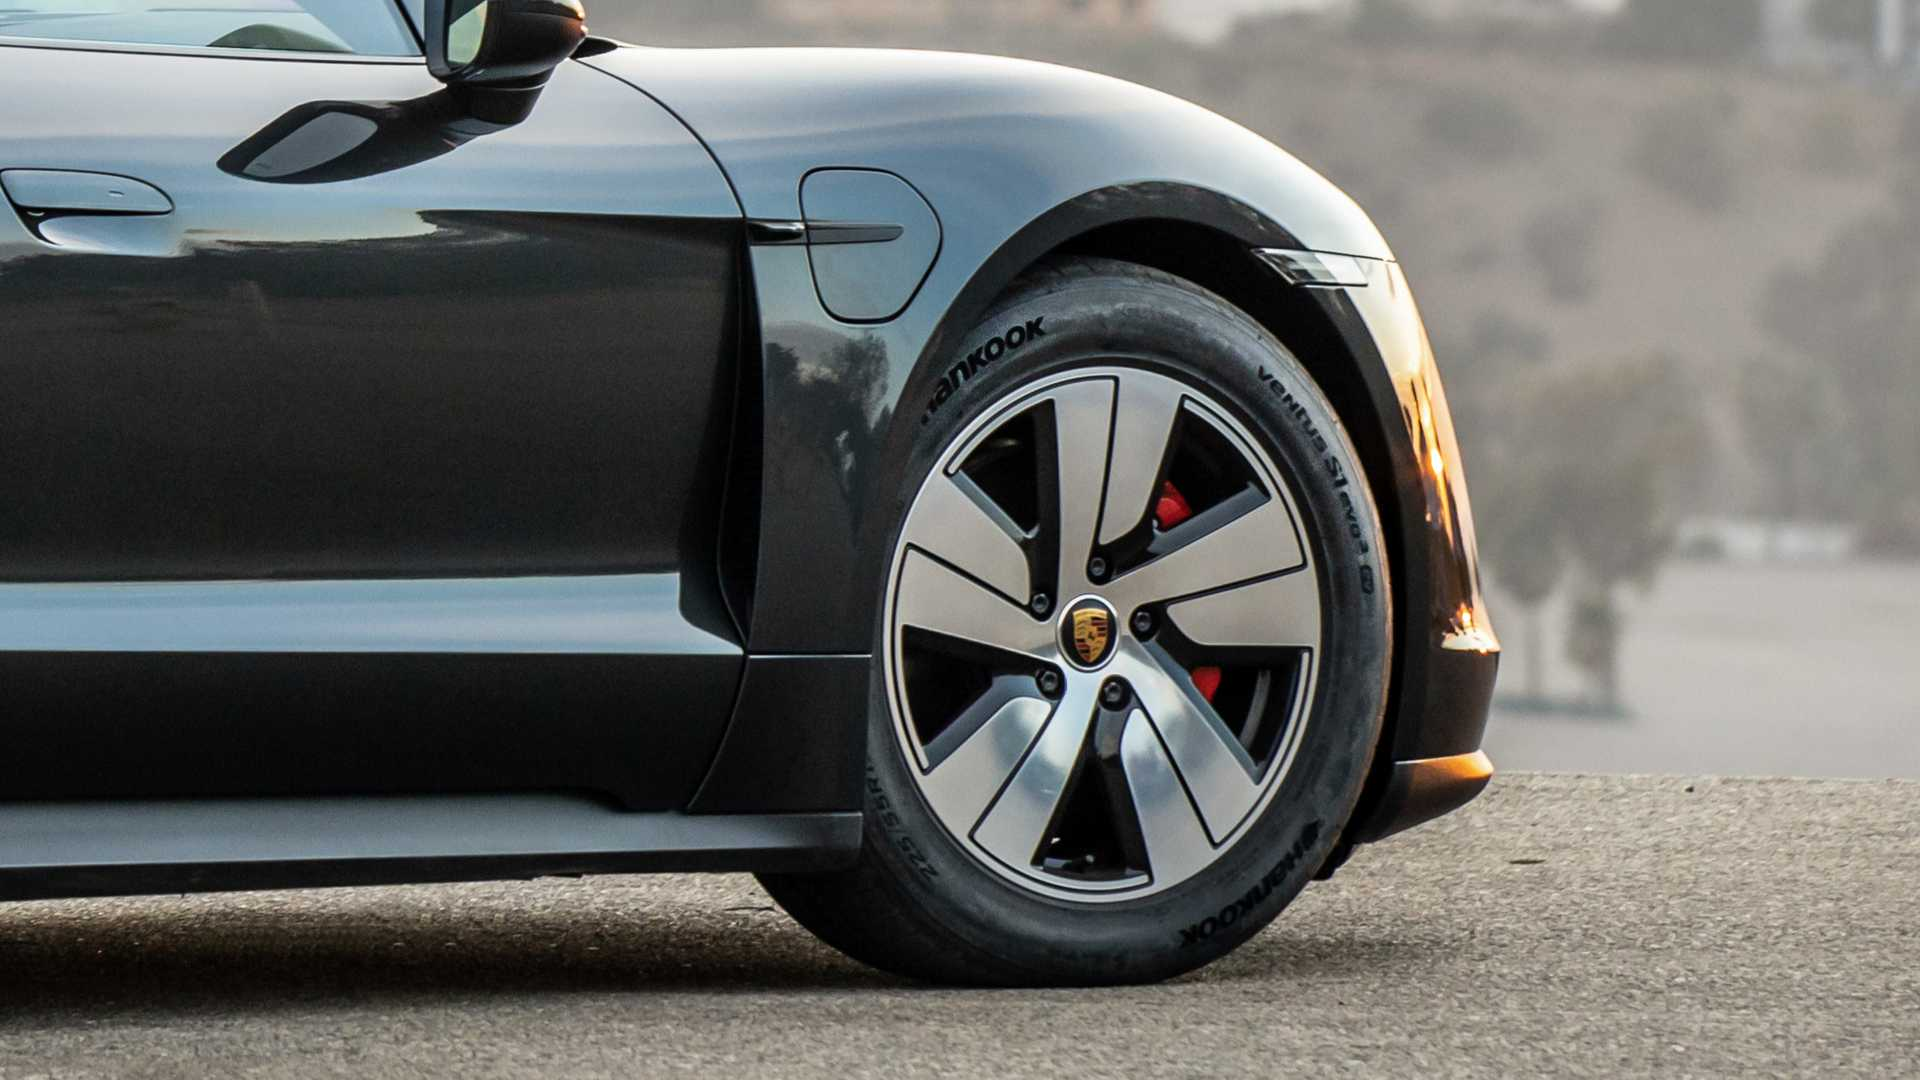 Porsche Taycan Gets Special Optimized Tires From Hankook